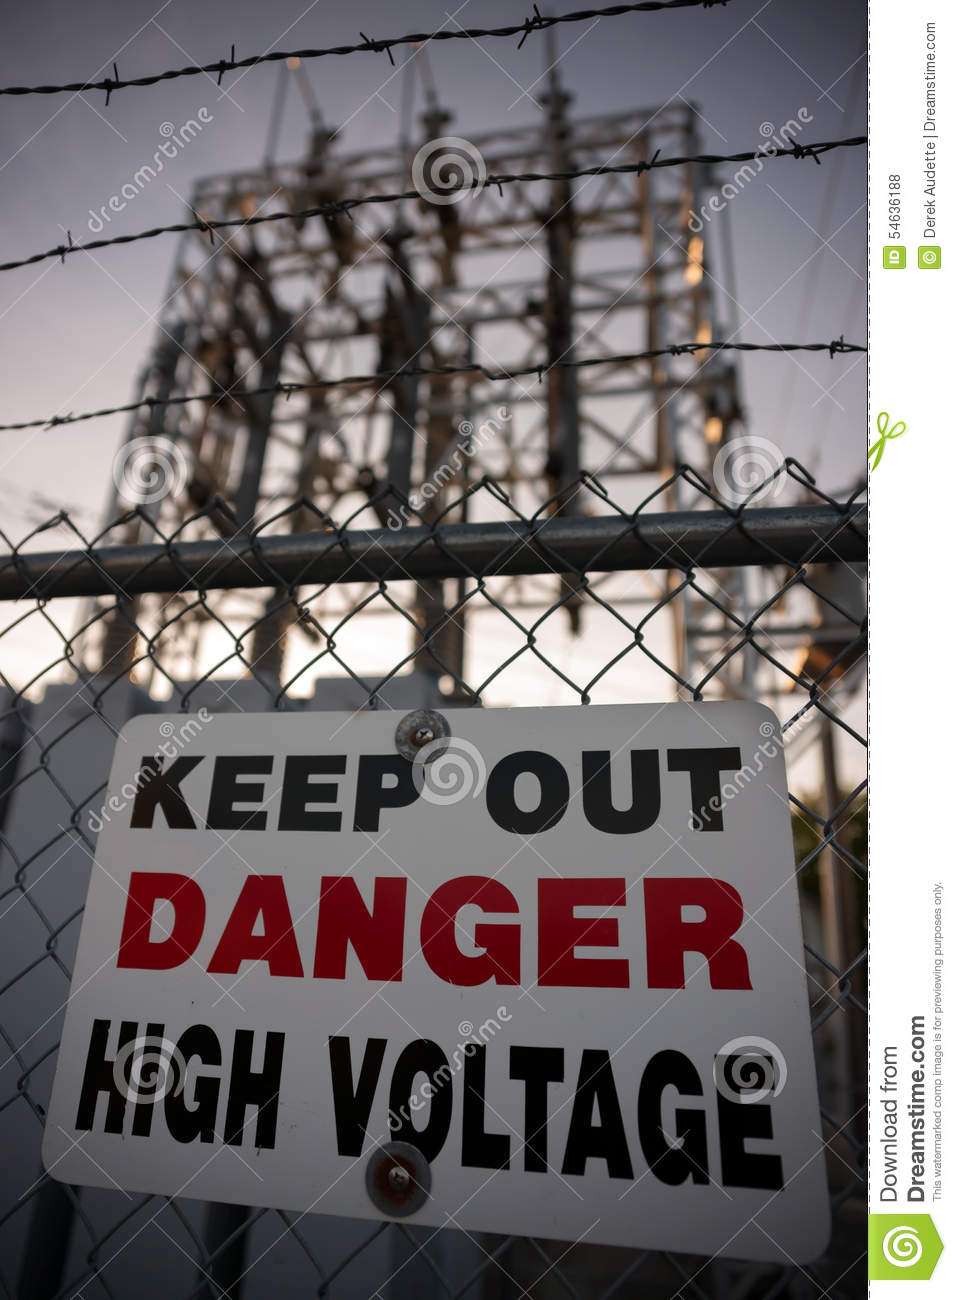 High Voltage Danger Sign Cartoon Vector Cartoondealer